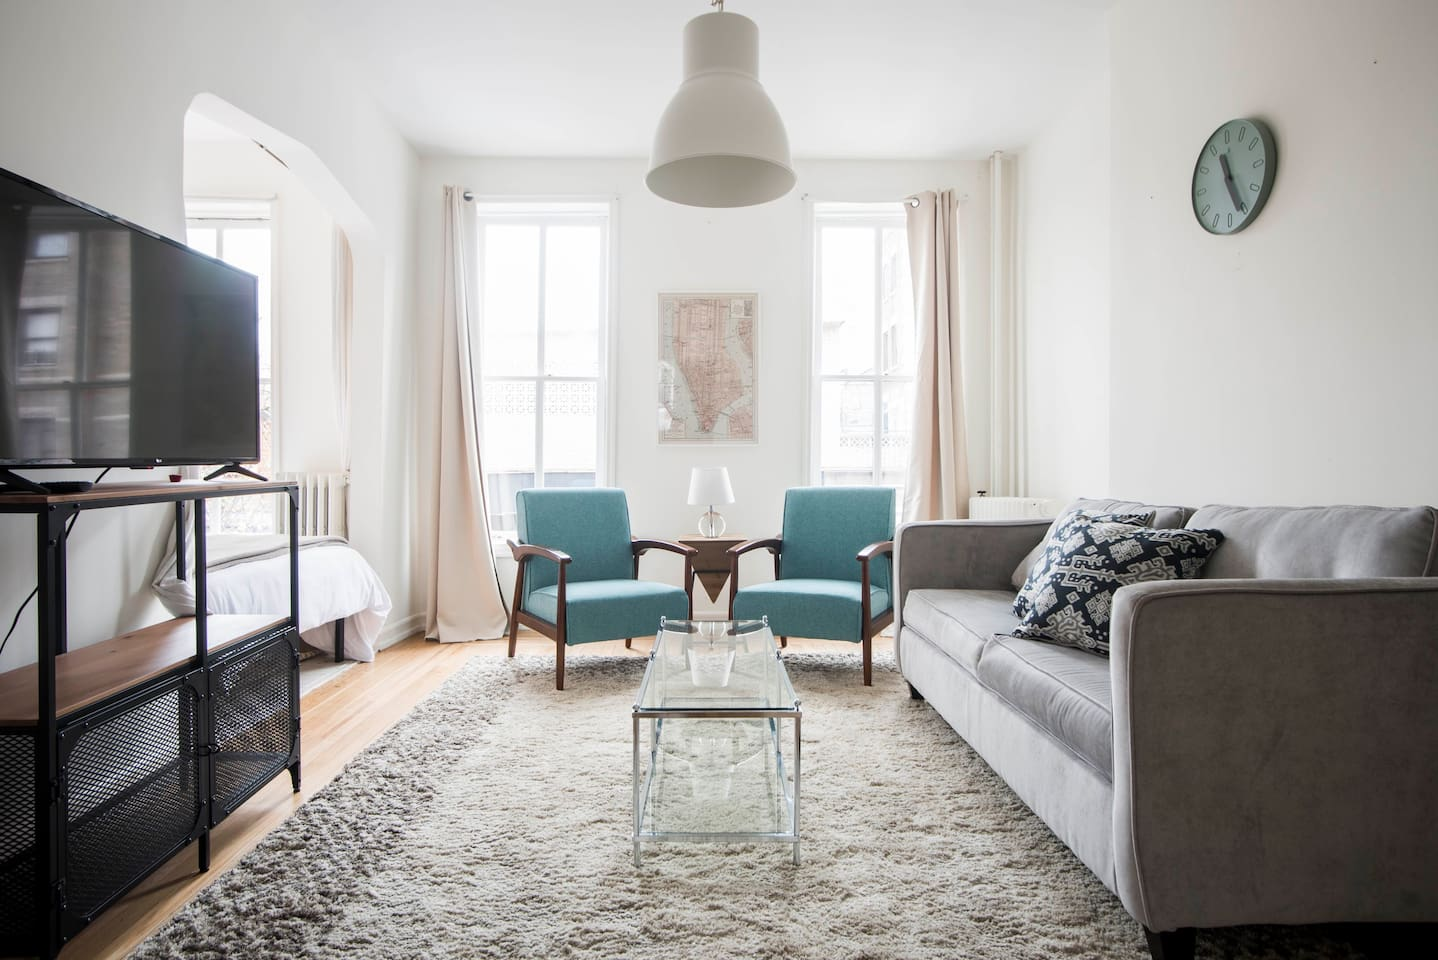 new clean cozy apt in bklyn best location apartments for rent